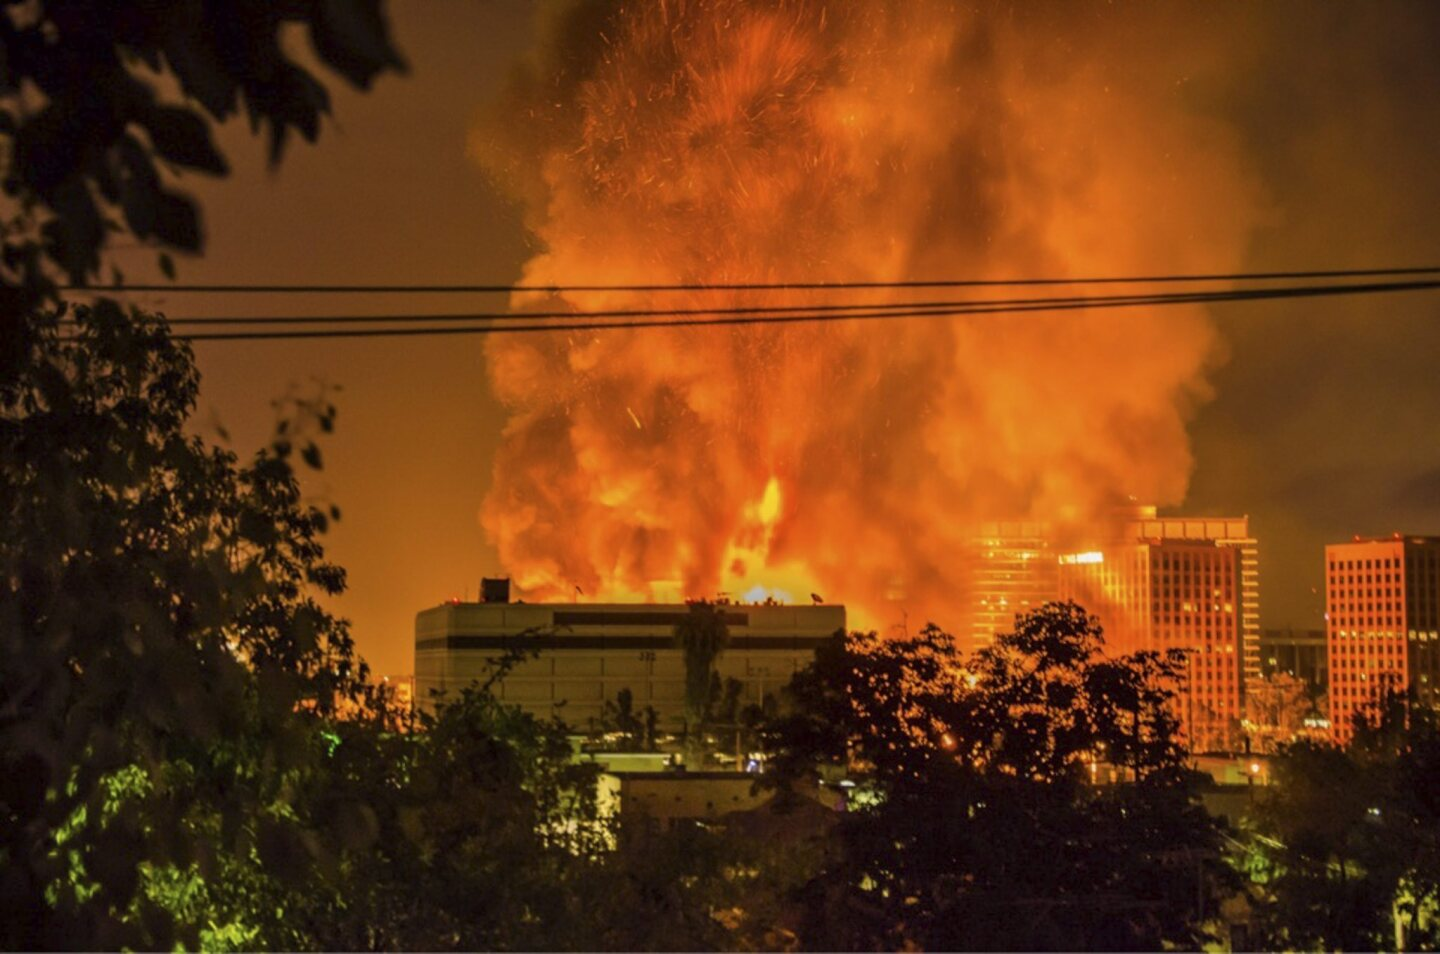 More than 200 firefighters work to control a massive fire as it destroys a seven-story building under construction in downtown Los Angeles.